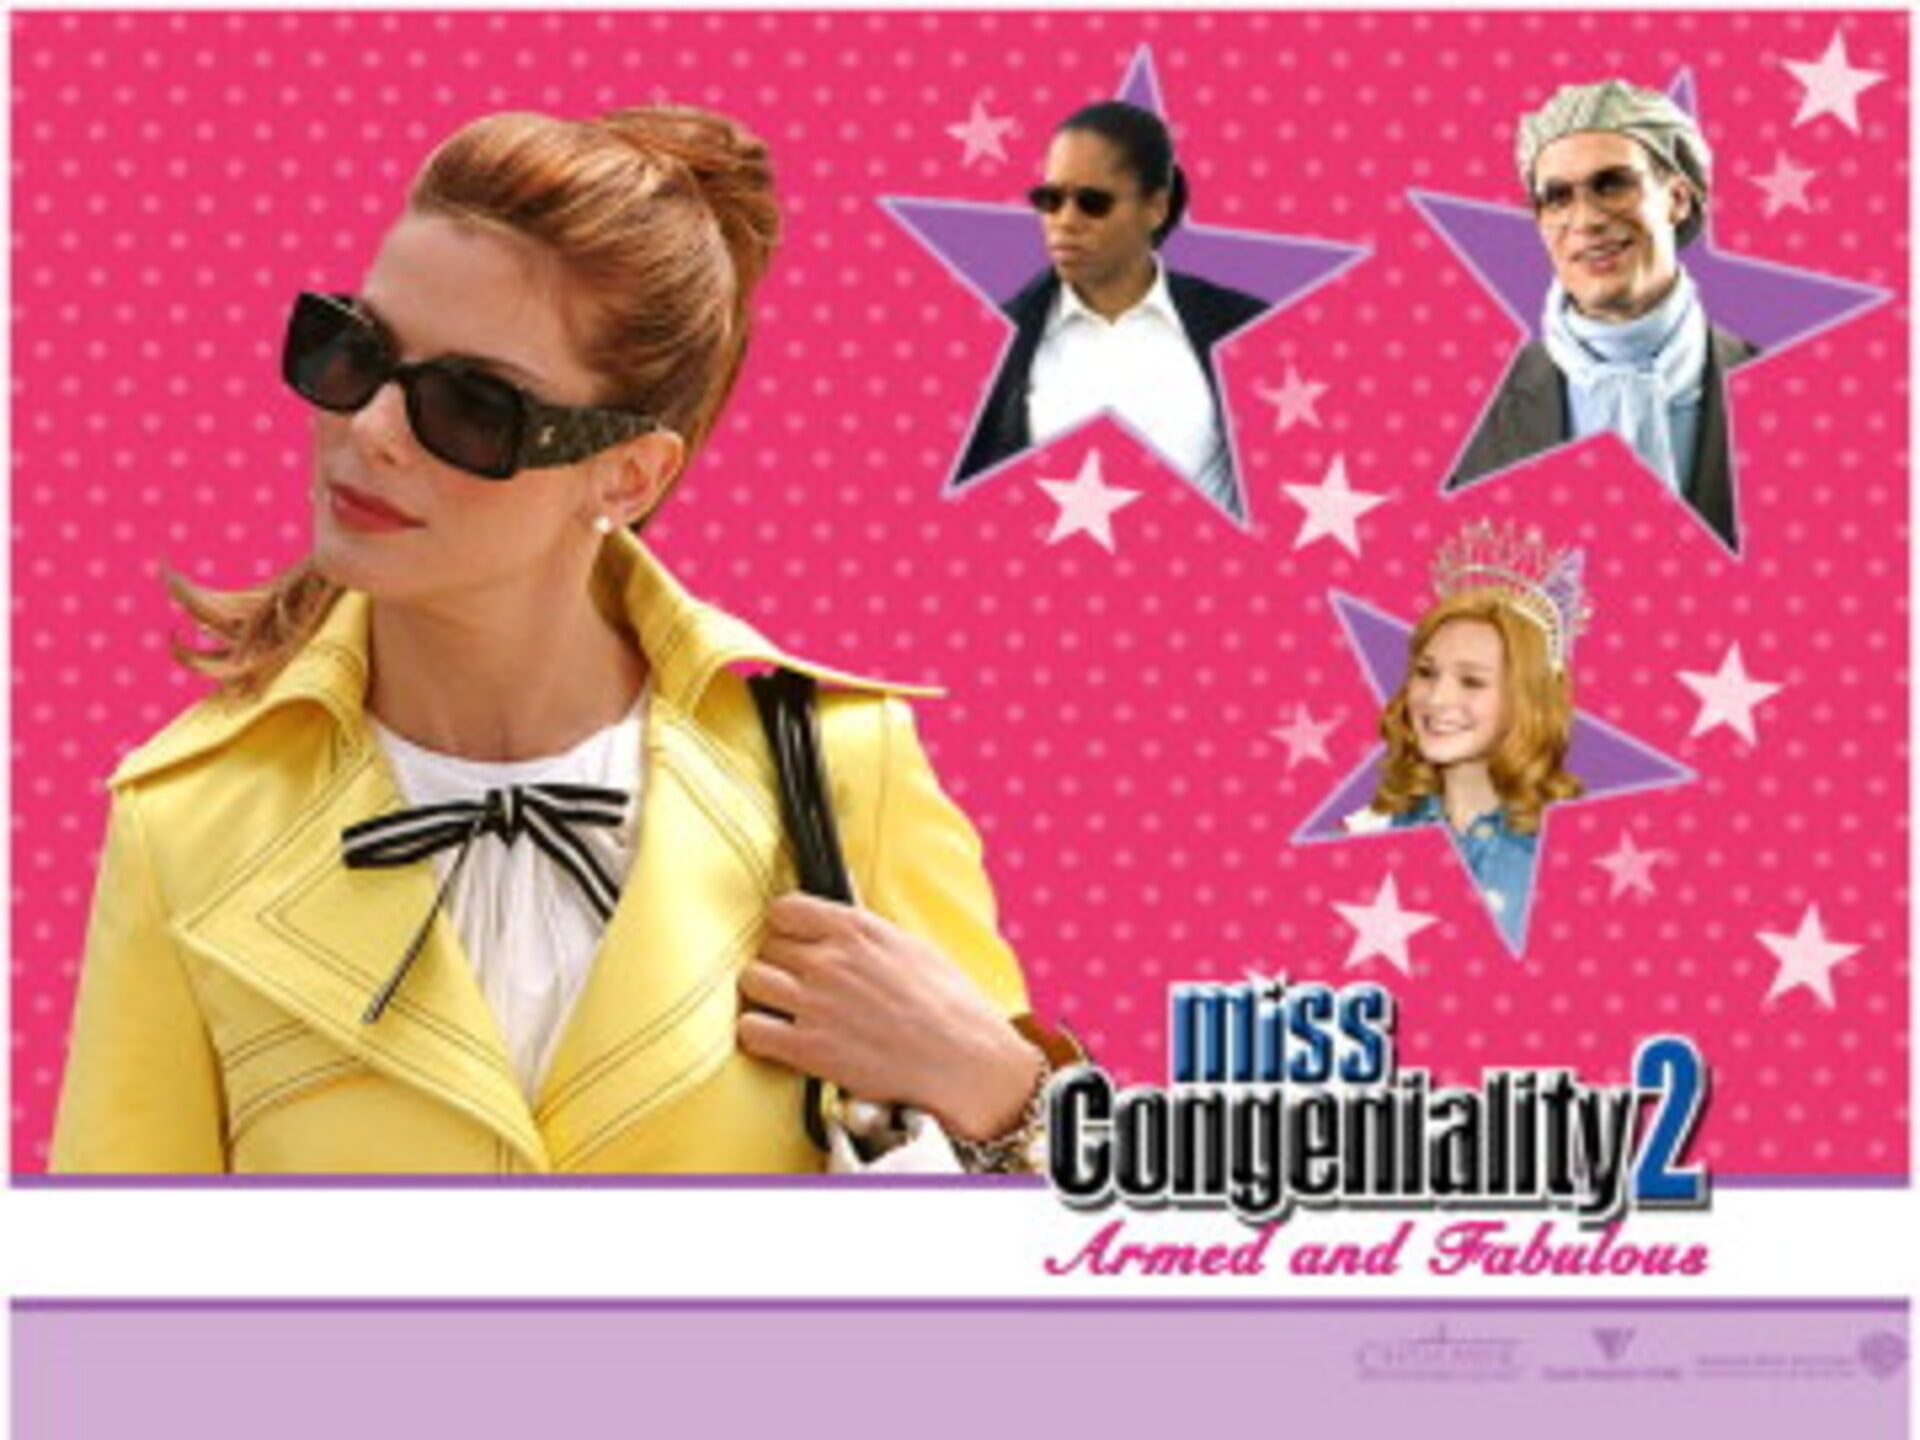 Miss Congeniality 2: Armed and Fabulous - Image 3